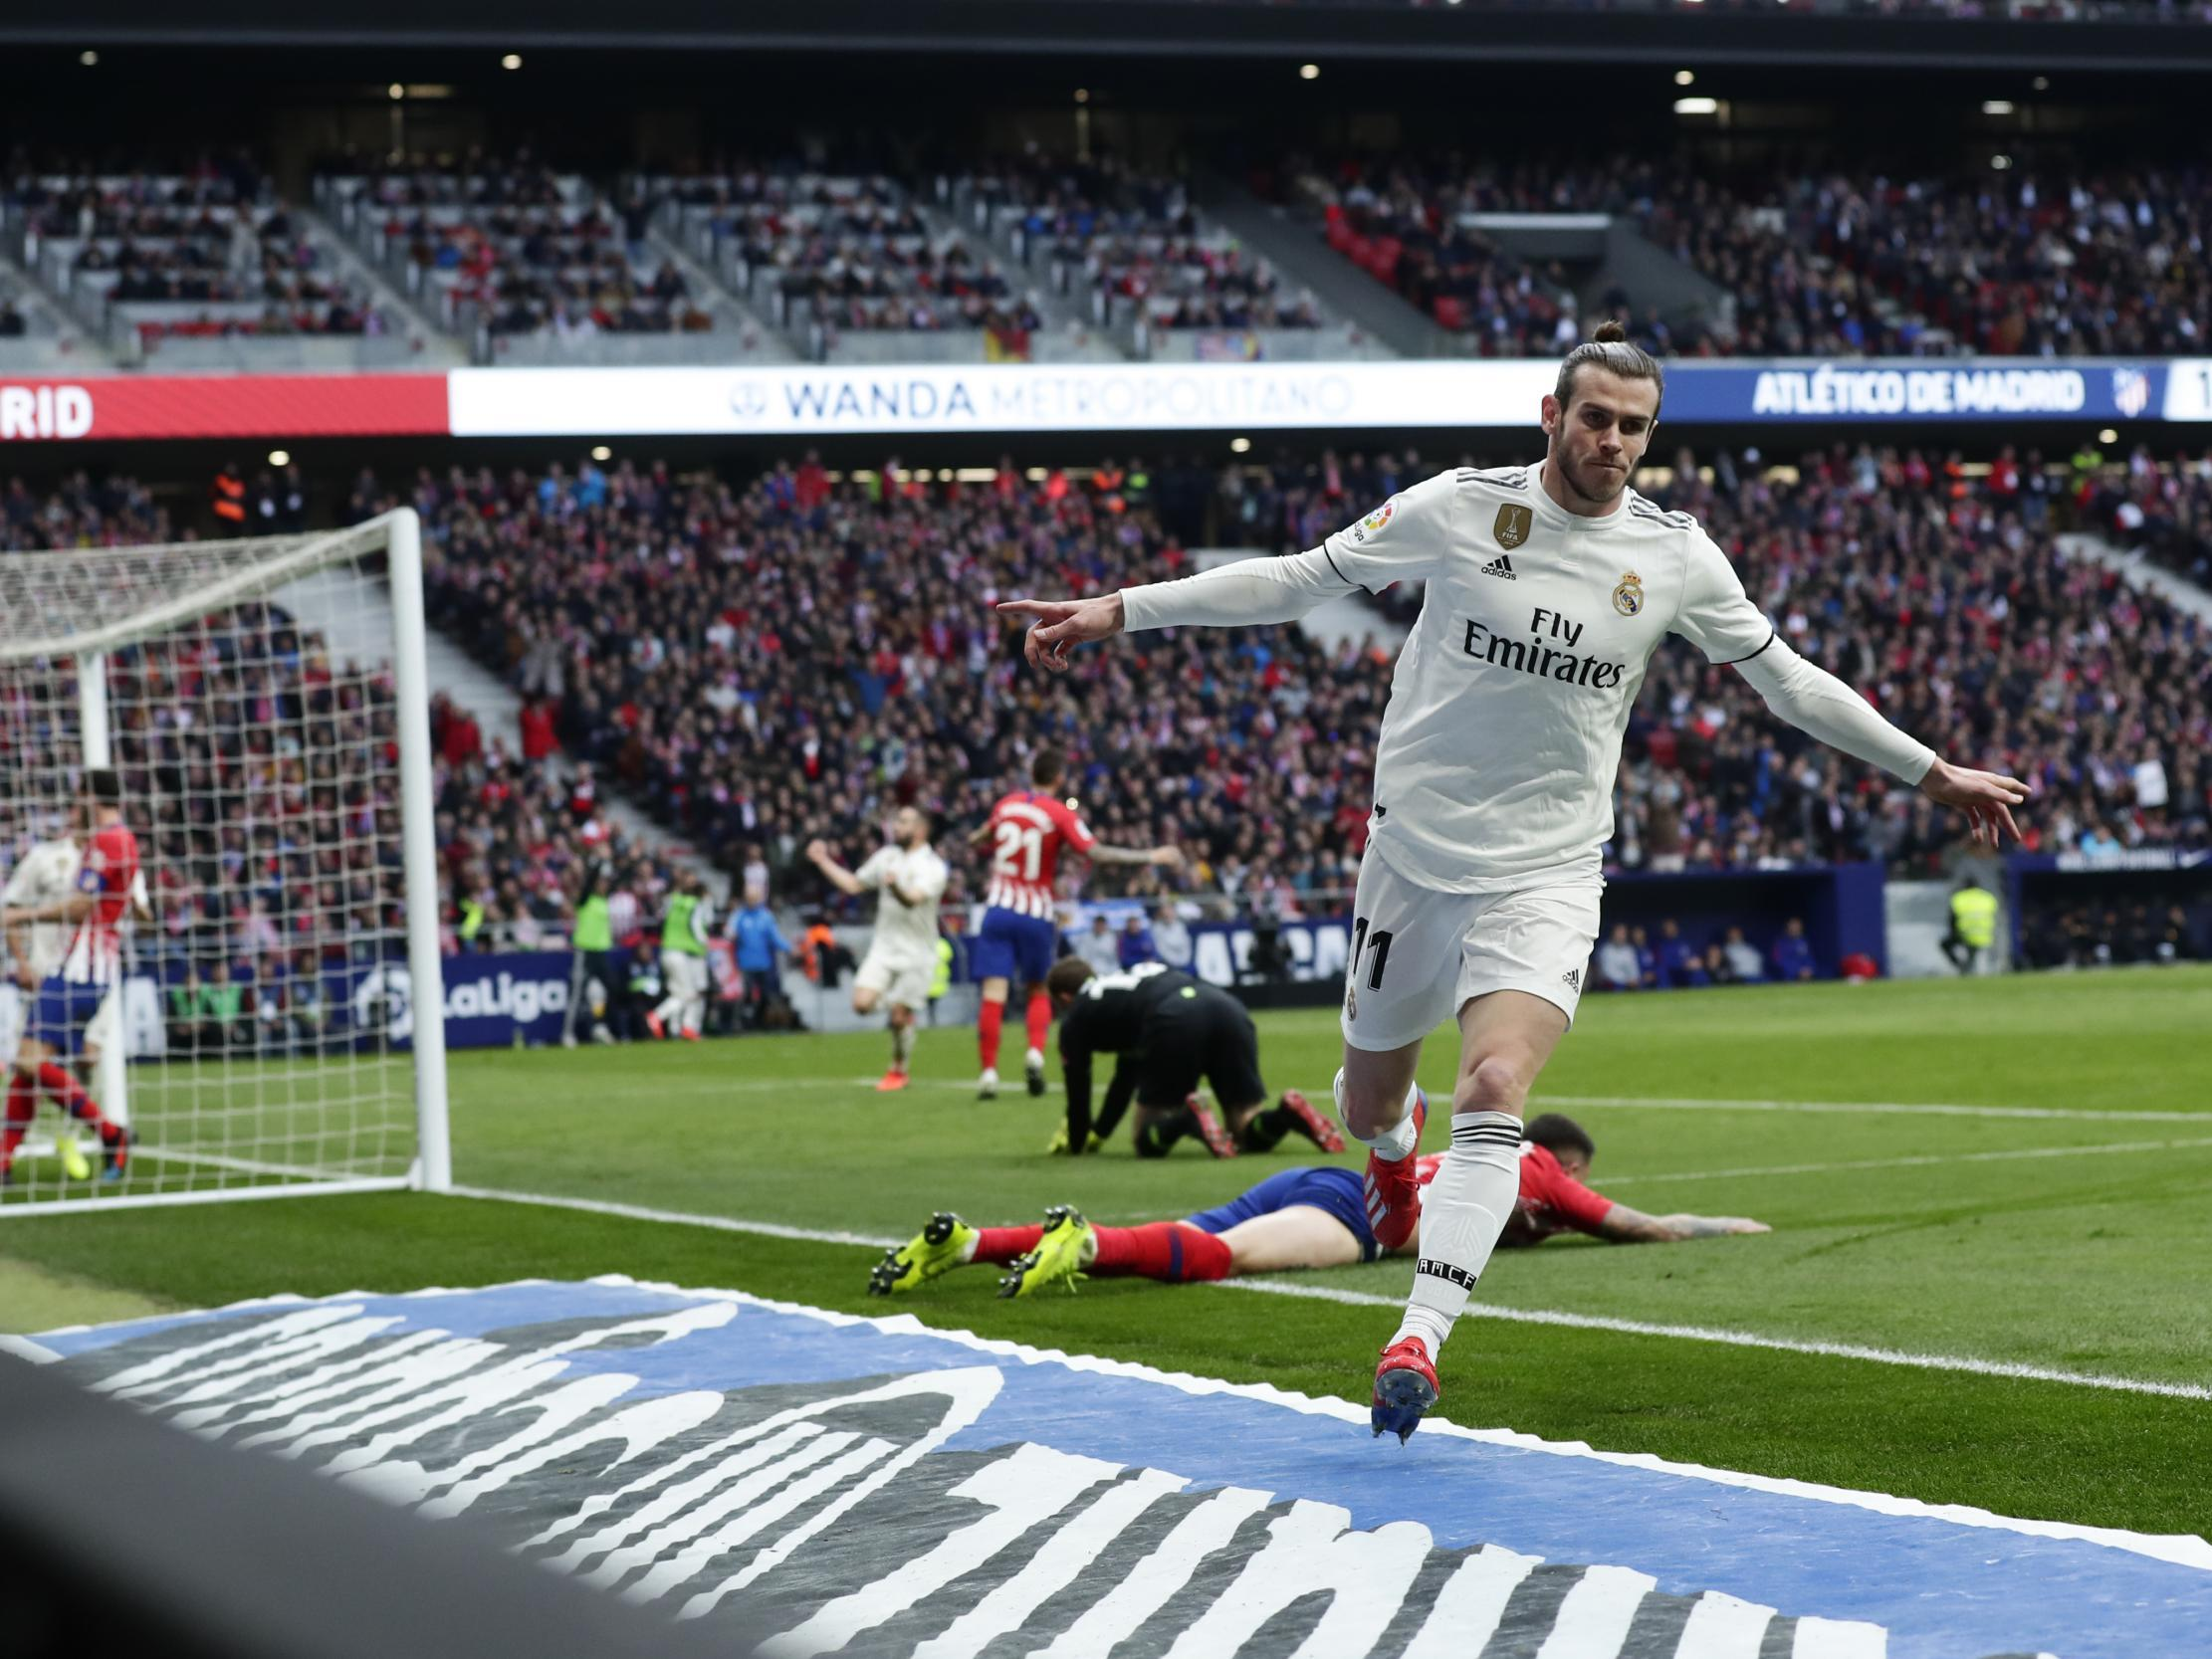 60d72a180 Gareth Bale  Real Madrid star could face 12-game ban for  provocative   celebration in derby vs Atletico